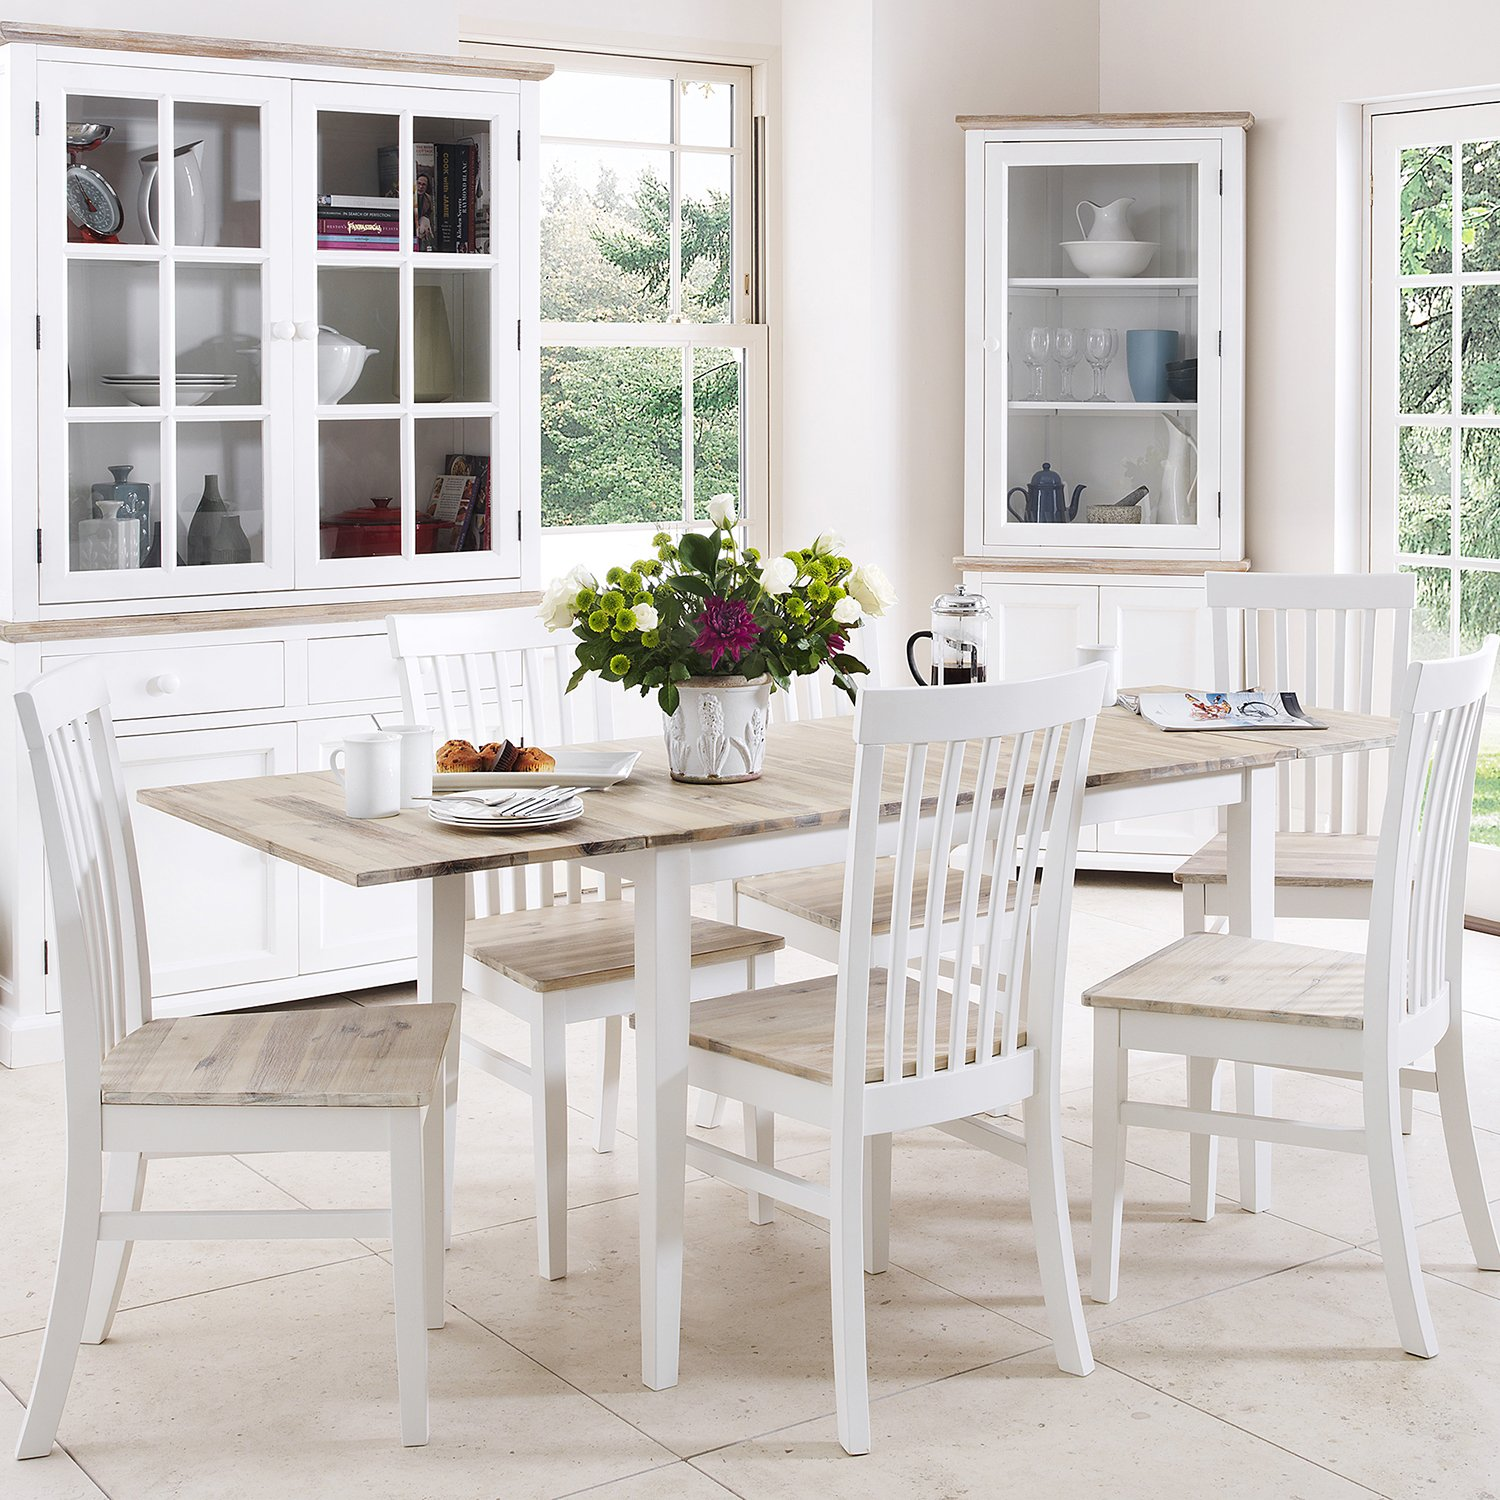 Florence Extending Table And 6 Chairs Set. Kitchen Dining Table And Chair  Set In White Colour With Limed Hardwood Table Top: Amazon.co.uk: Kitchen U0026  Home